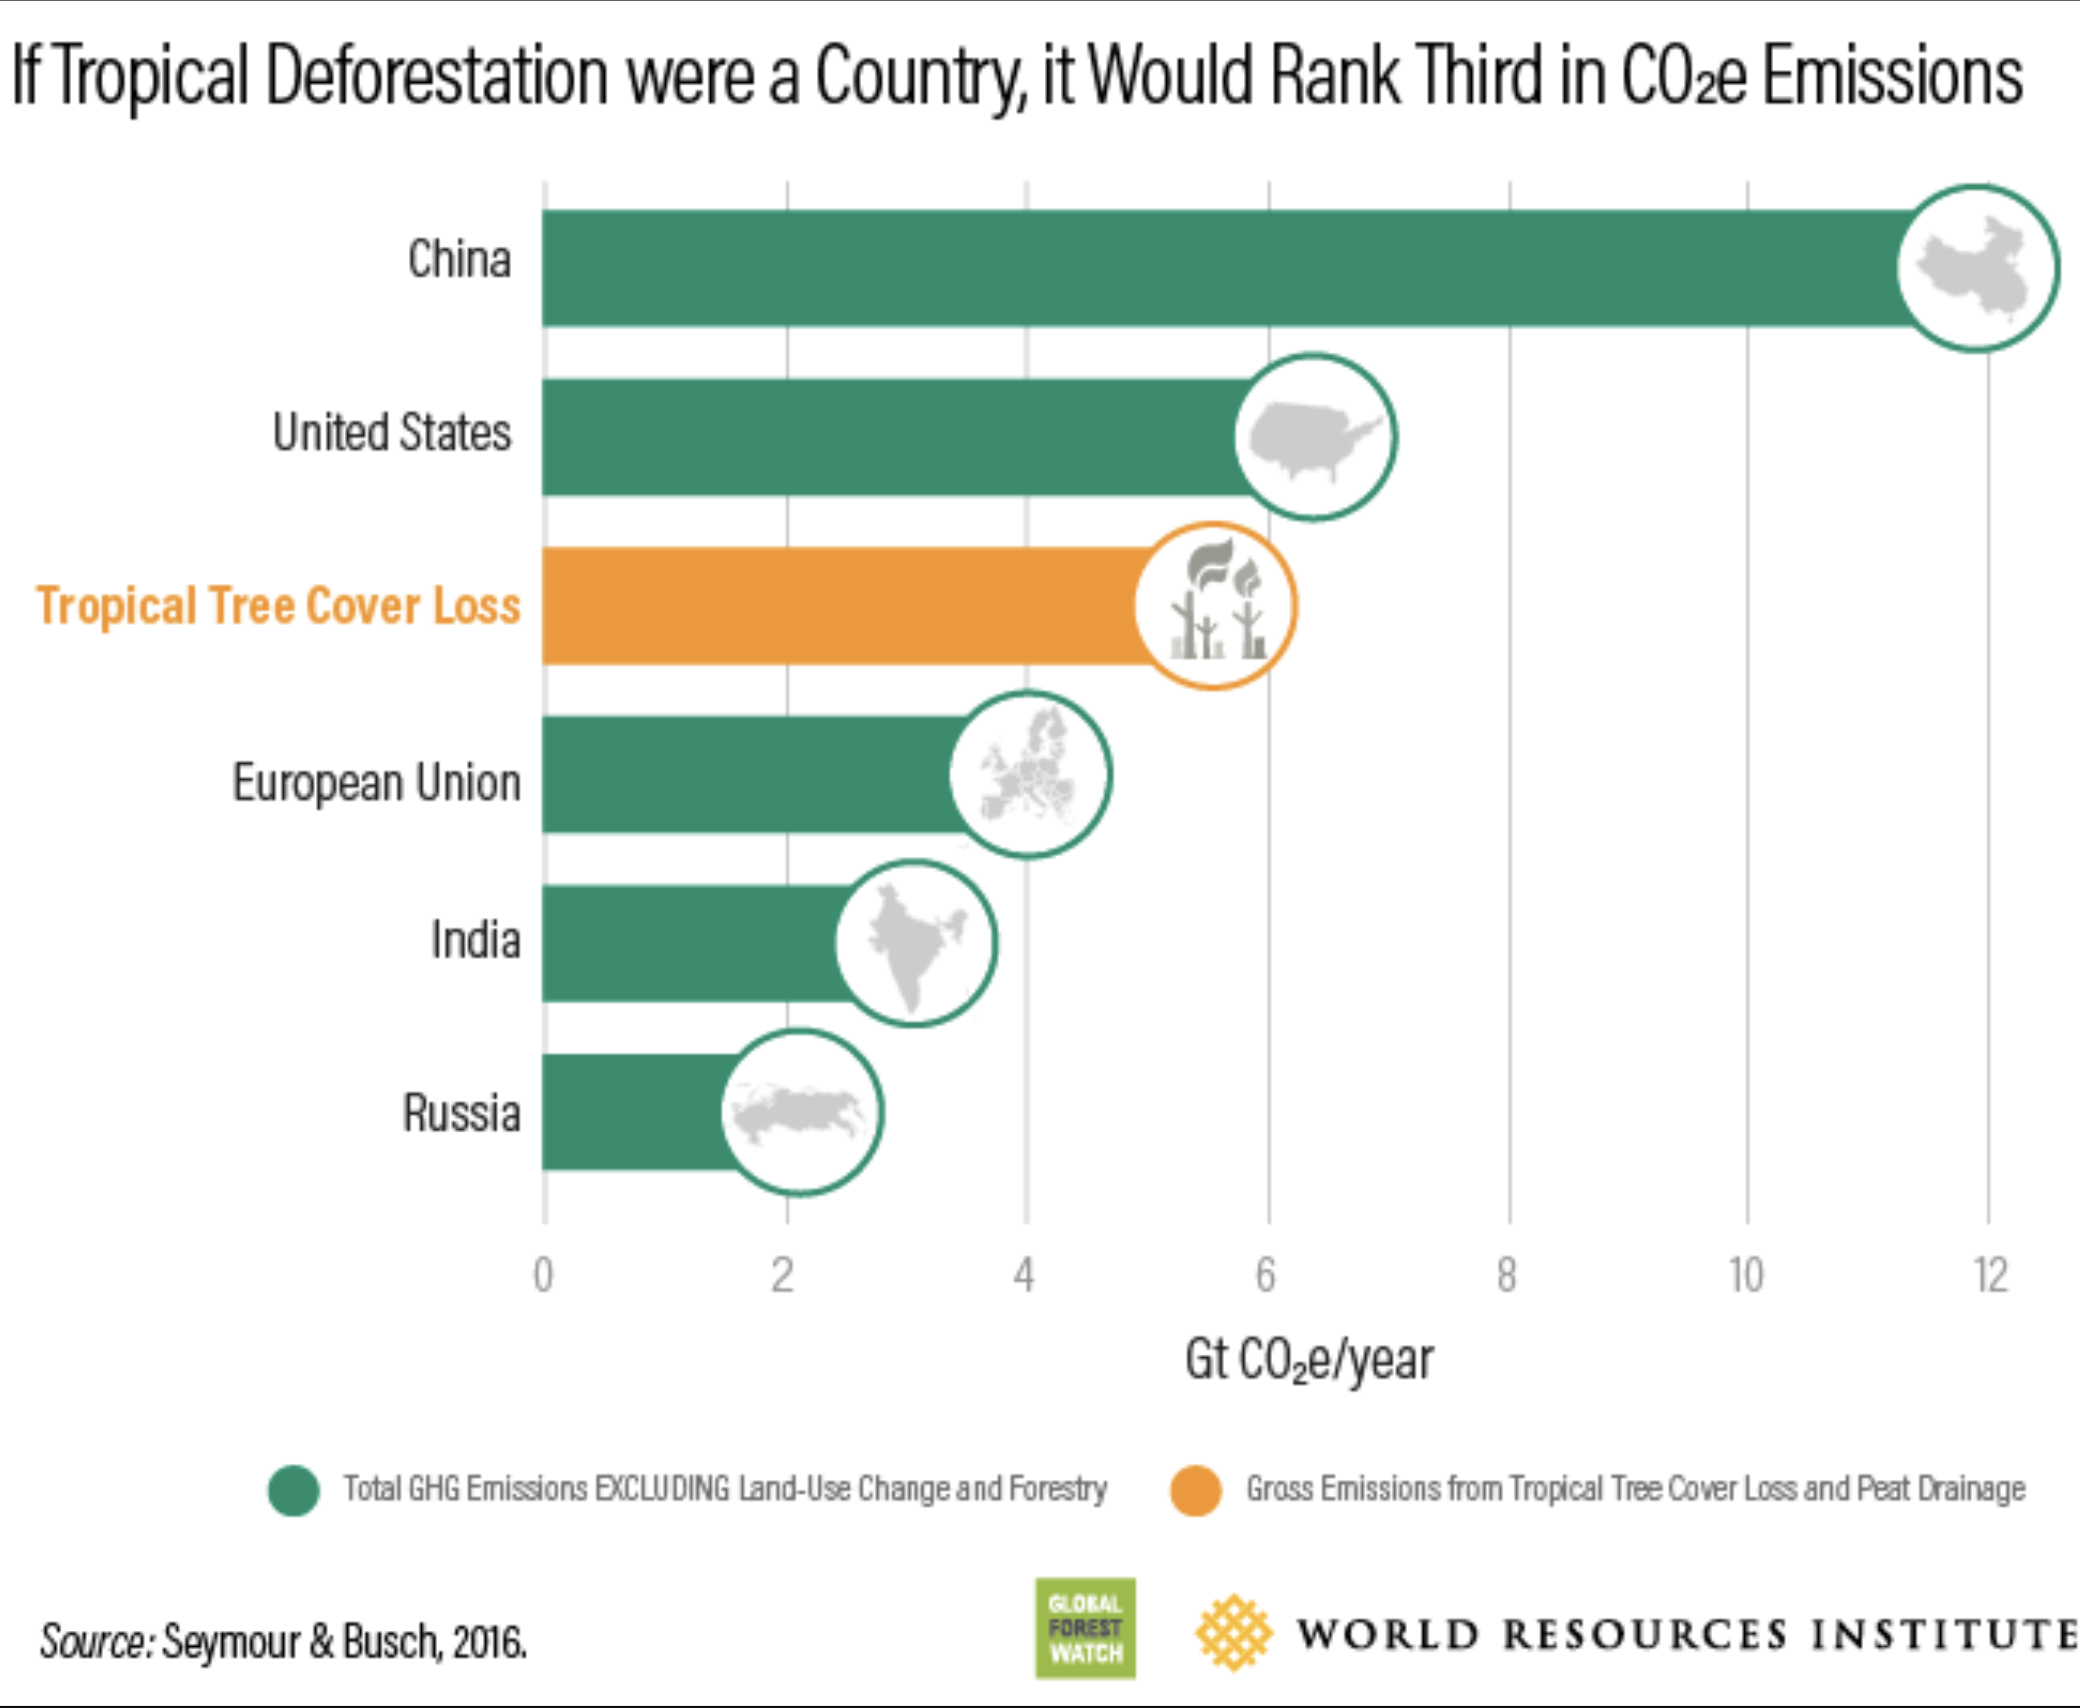 Halting deforestation would go a long way towards meeting the Paris climate goals